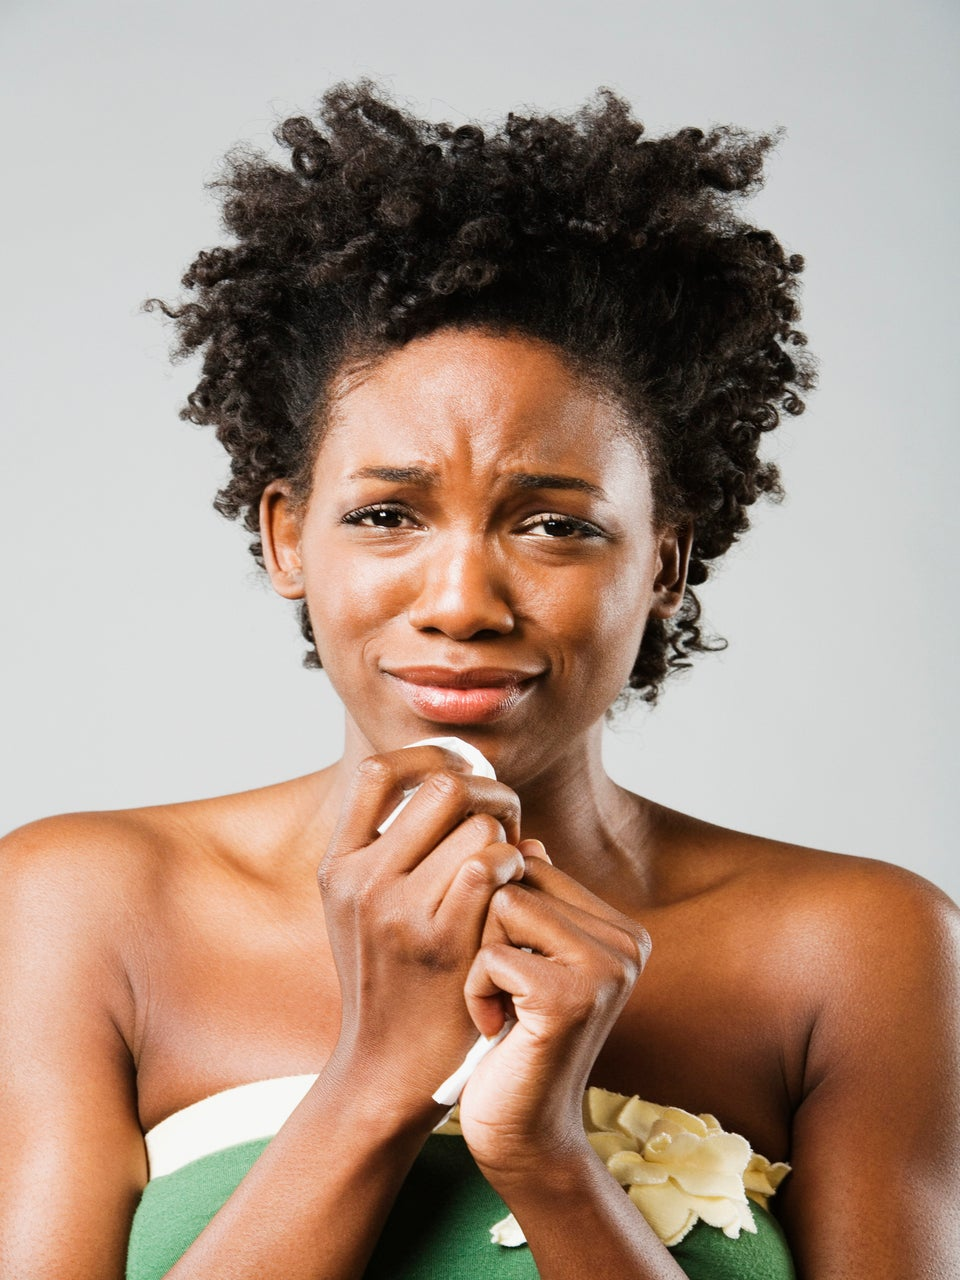 CDC Reveals Shocking New Stats About Syphilis and Gonorrhea Among Blacks